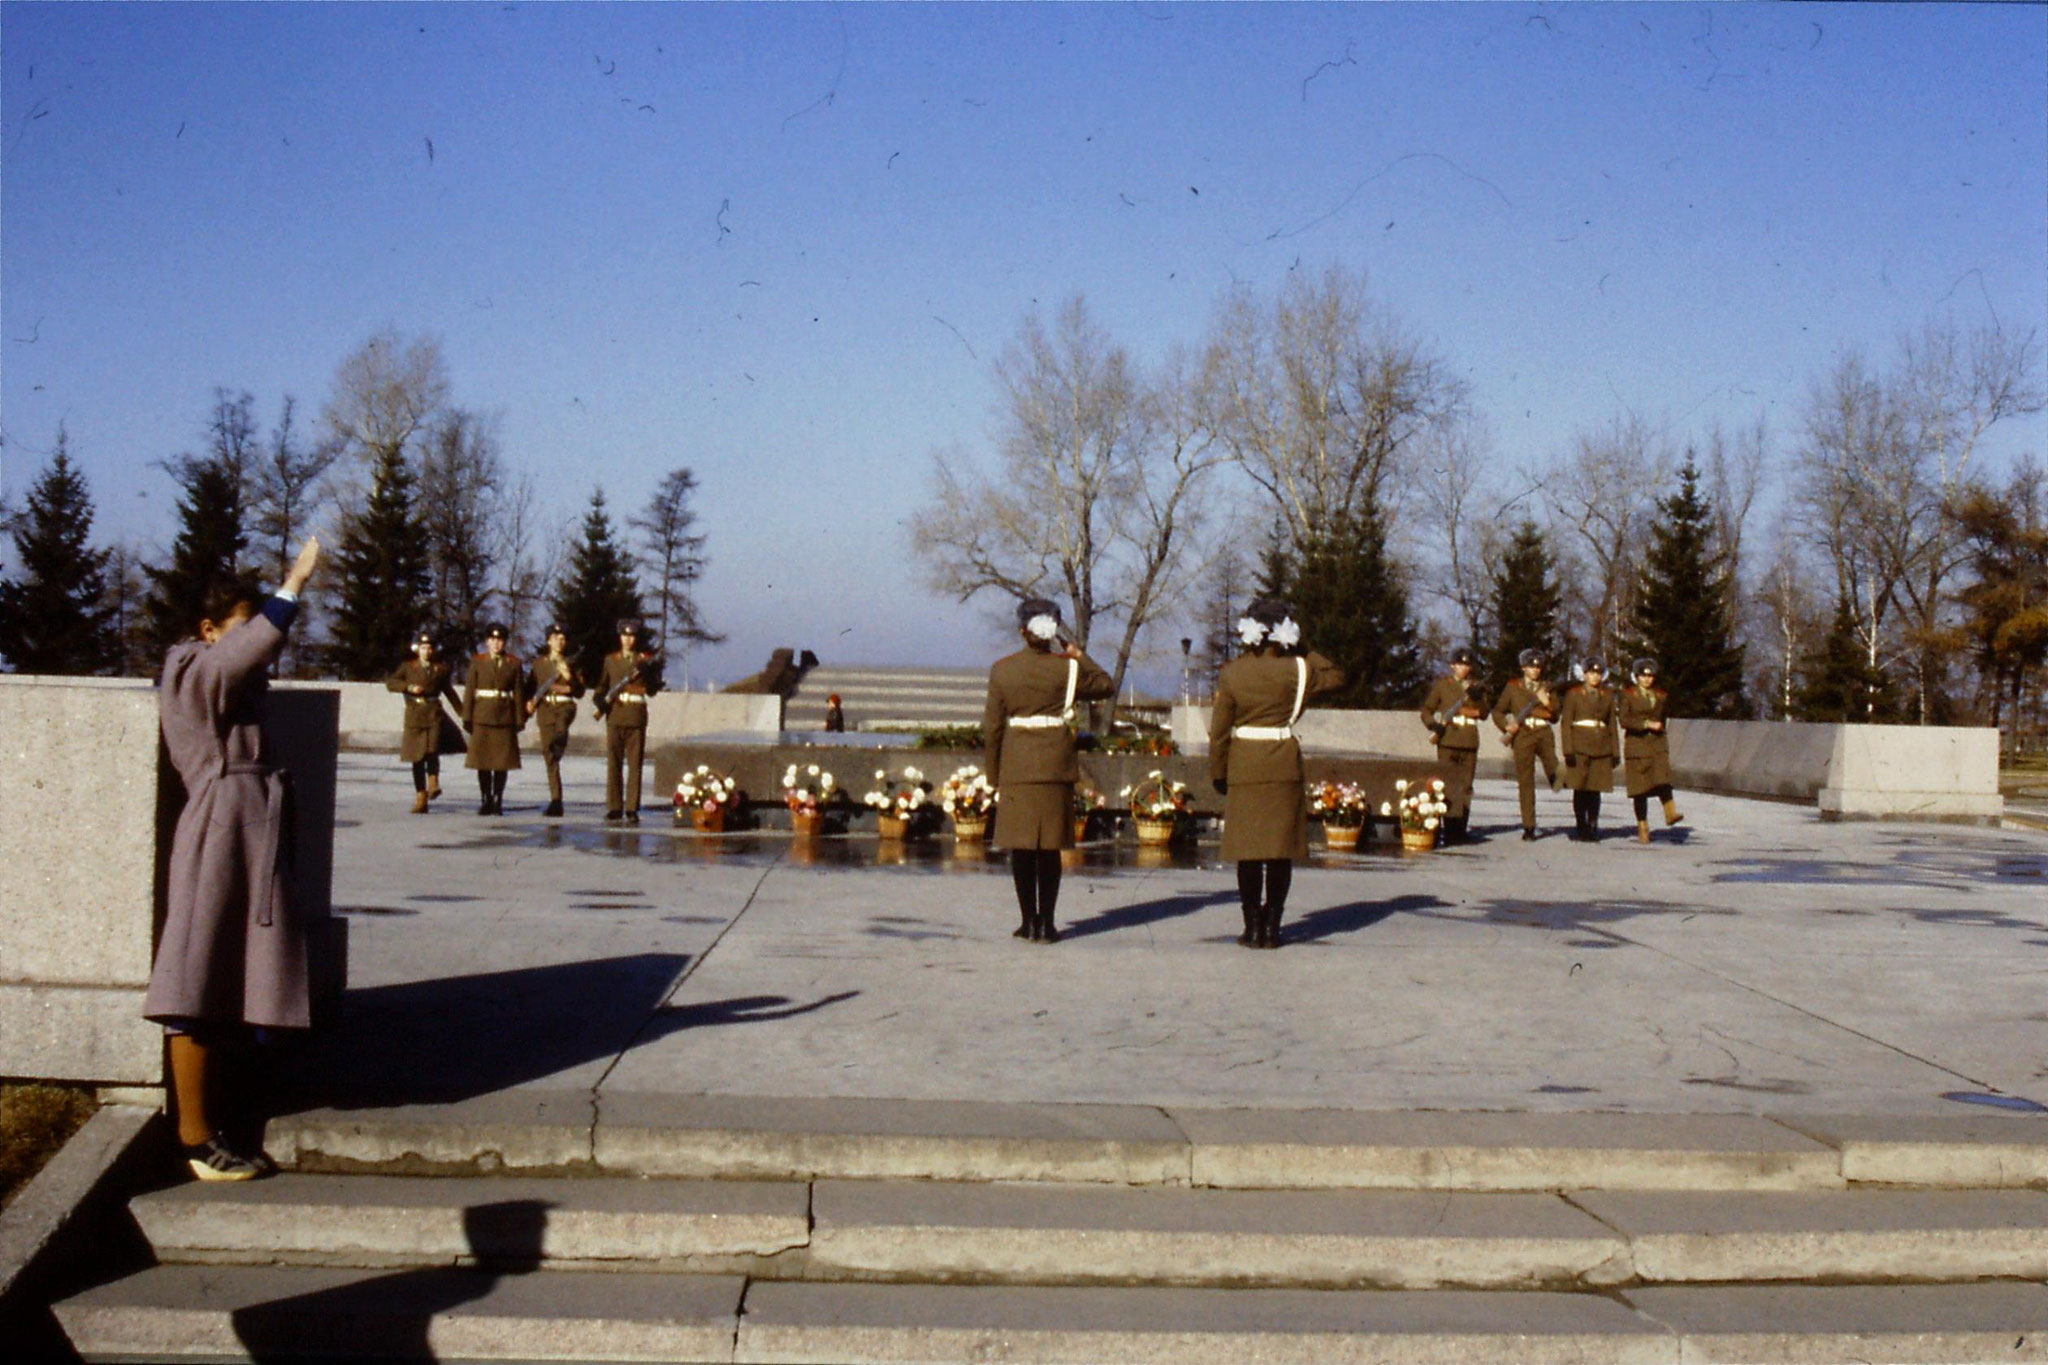 24/10/1988: 8: Irkutsk war memorial